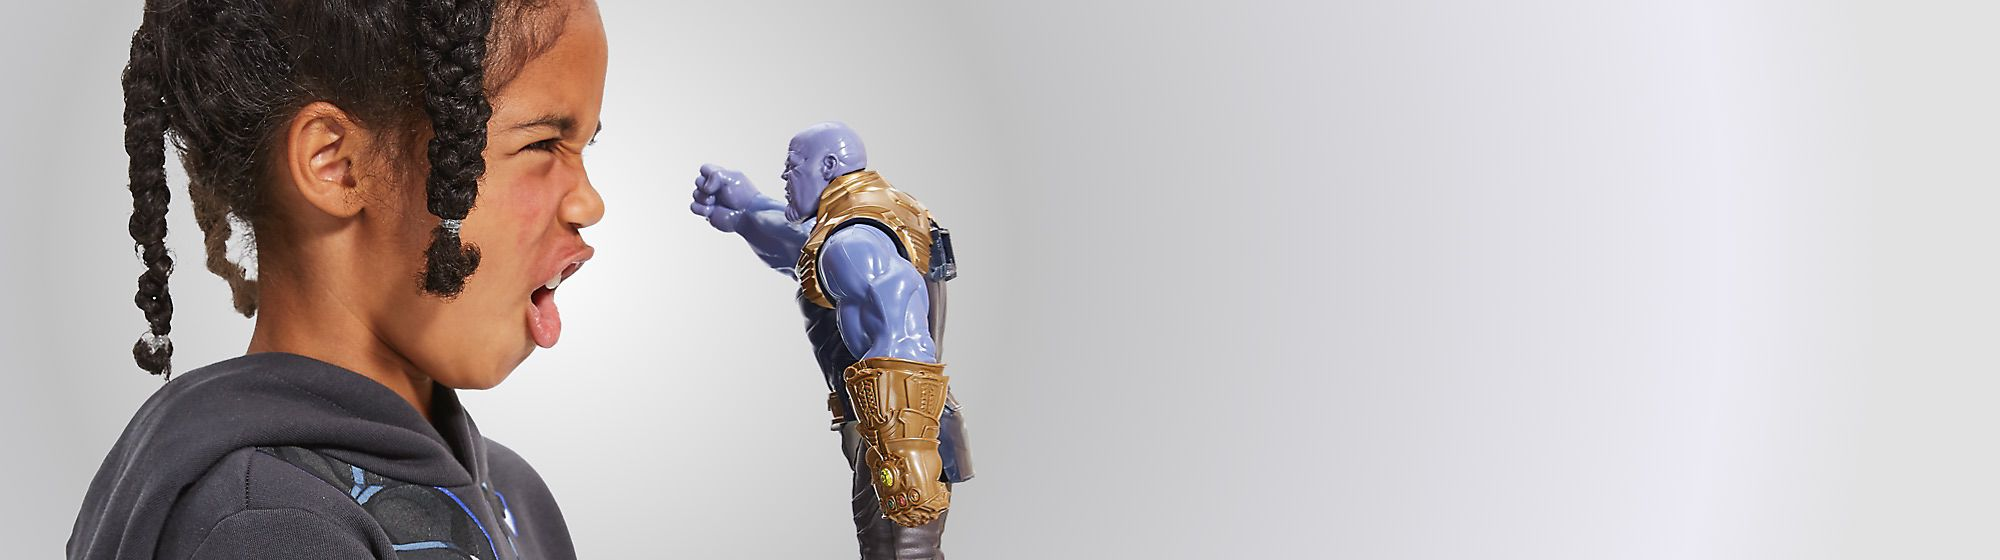 Marvel Toys Heroric playtime and epic adventures with our range of Marvel toys and action figures